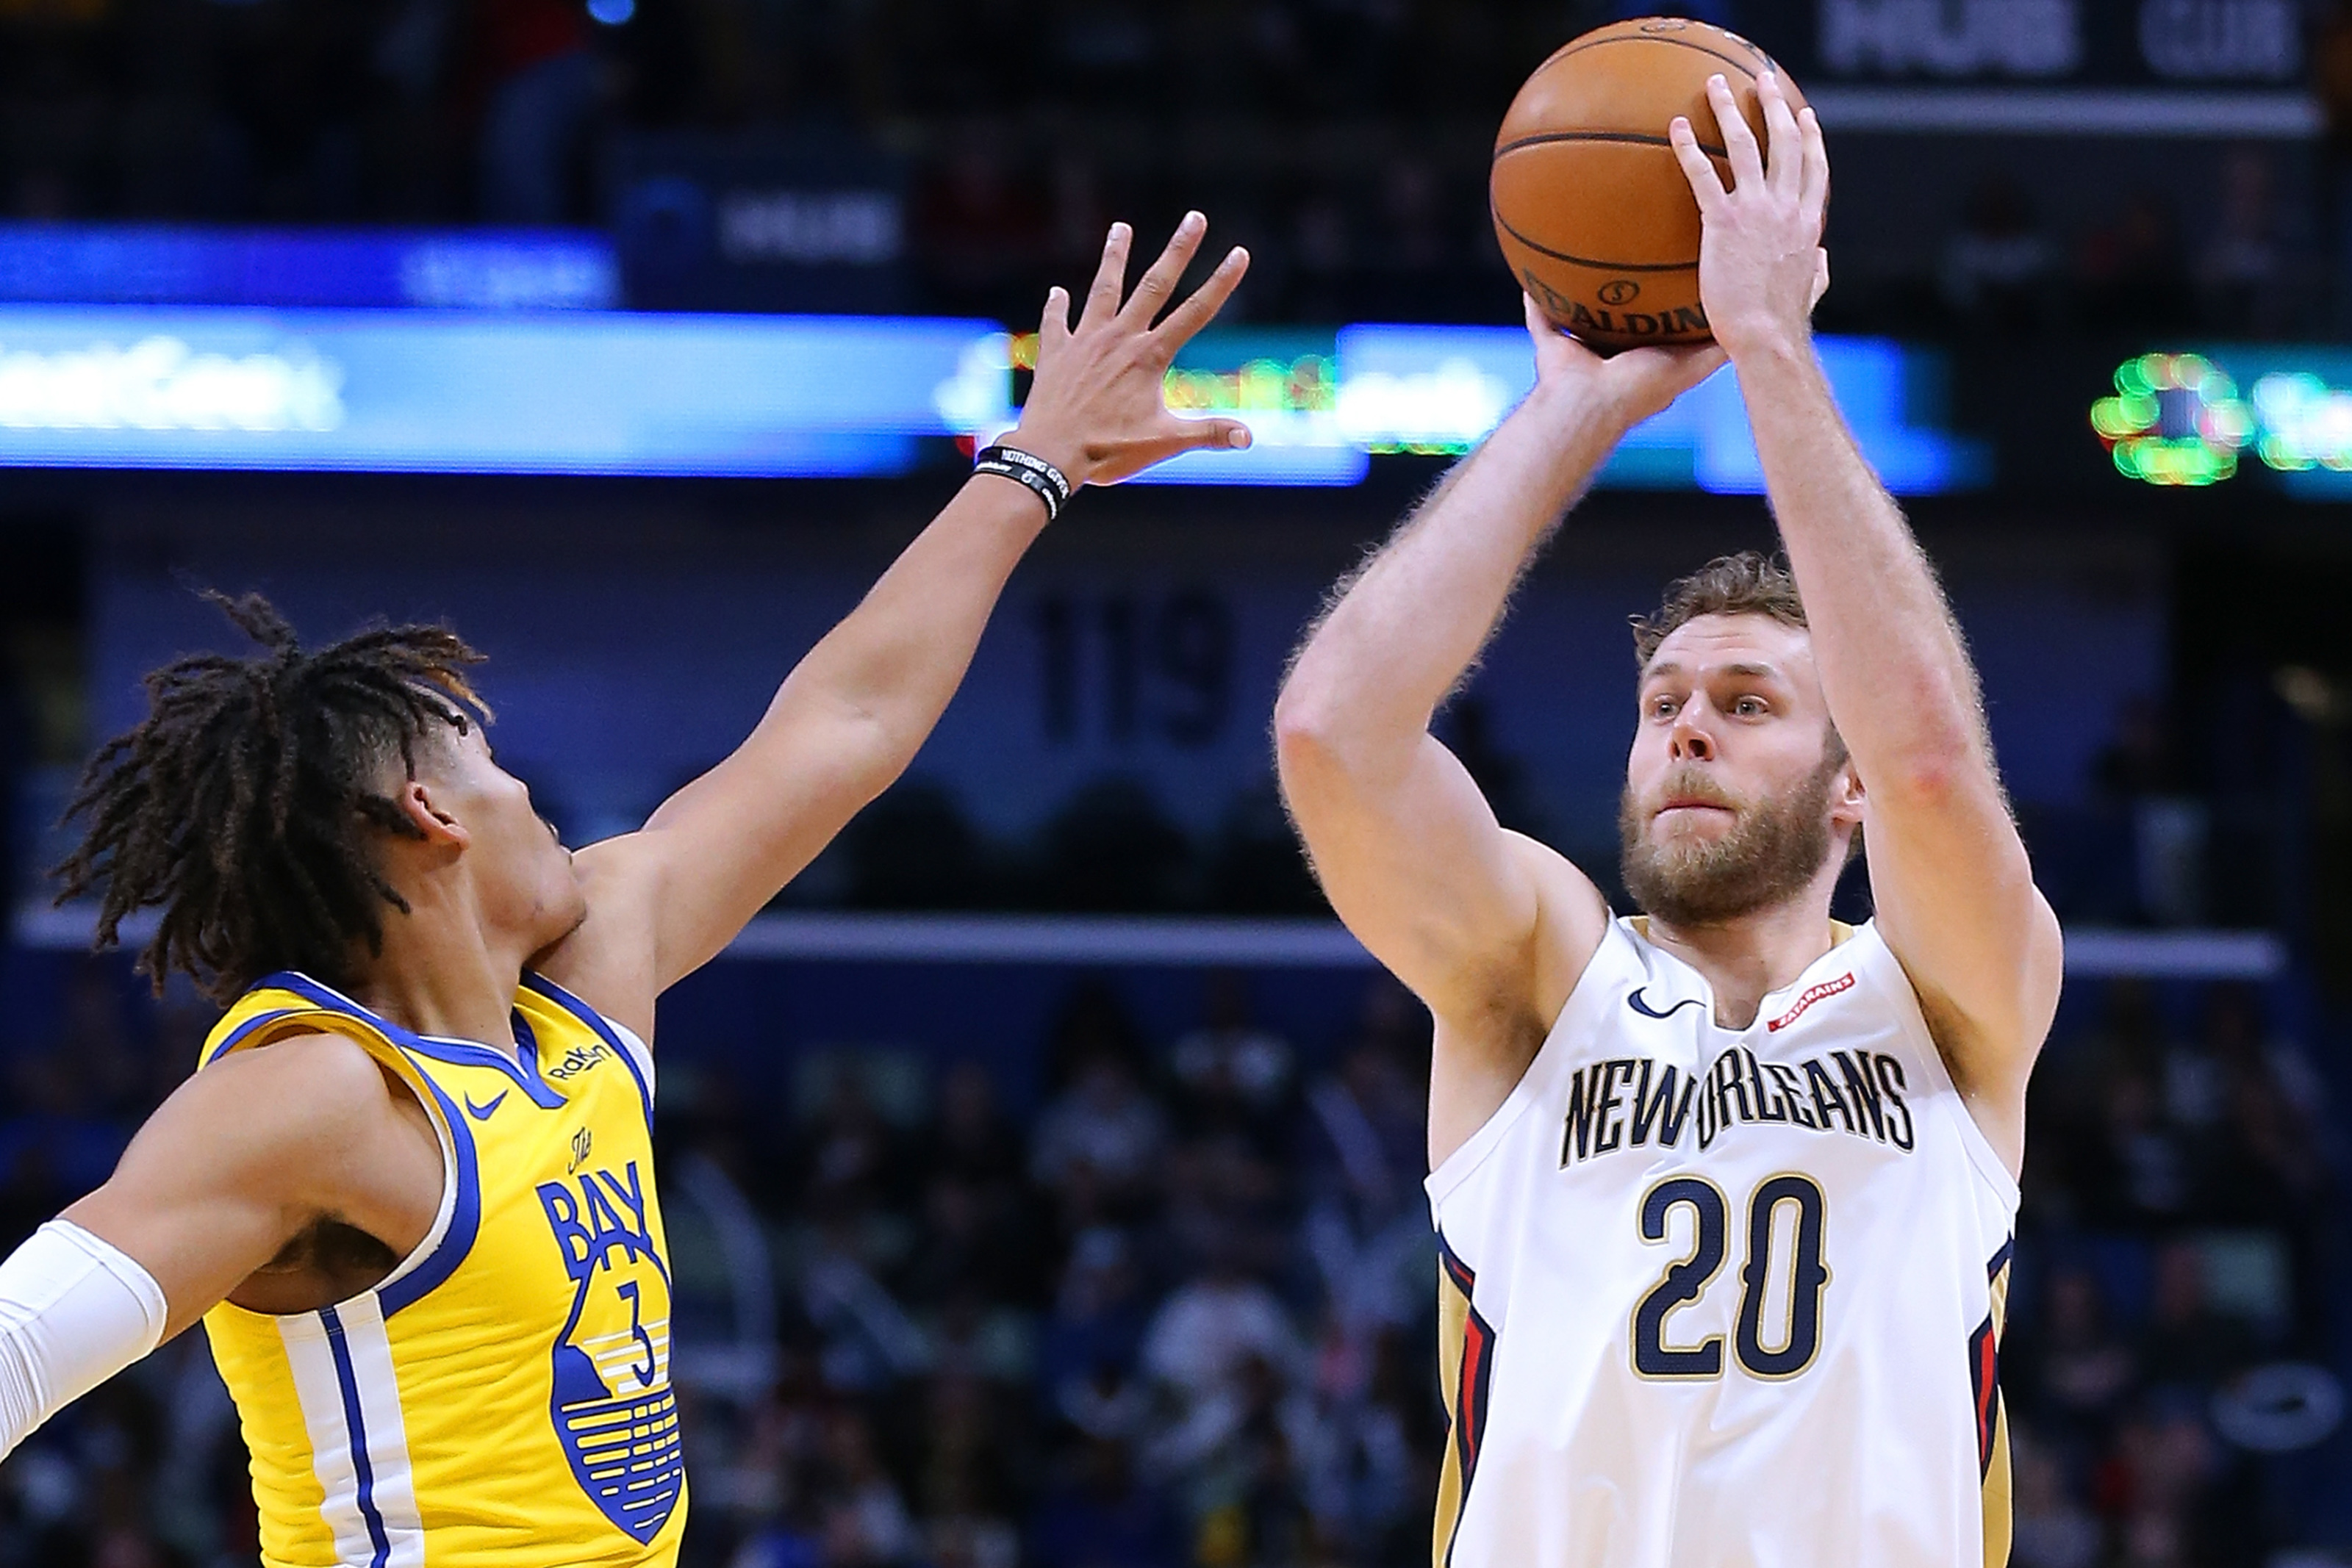 New Orleans Pelicans vs. Golden State Warriors: Betting Odds, Injuries and DFS Tips